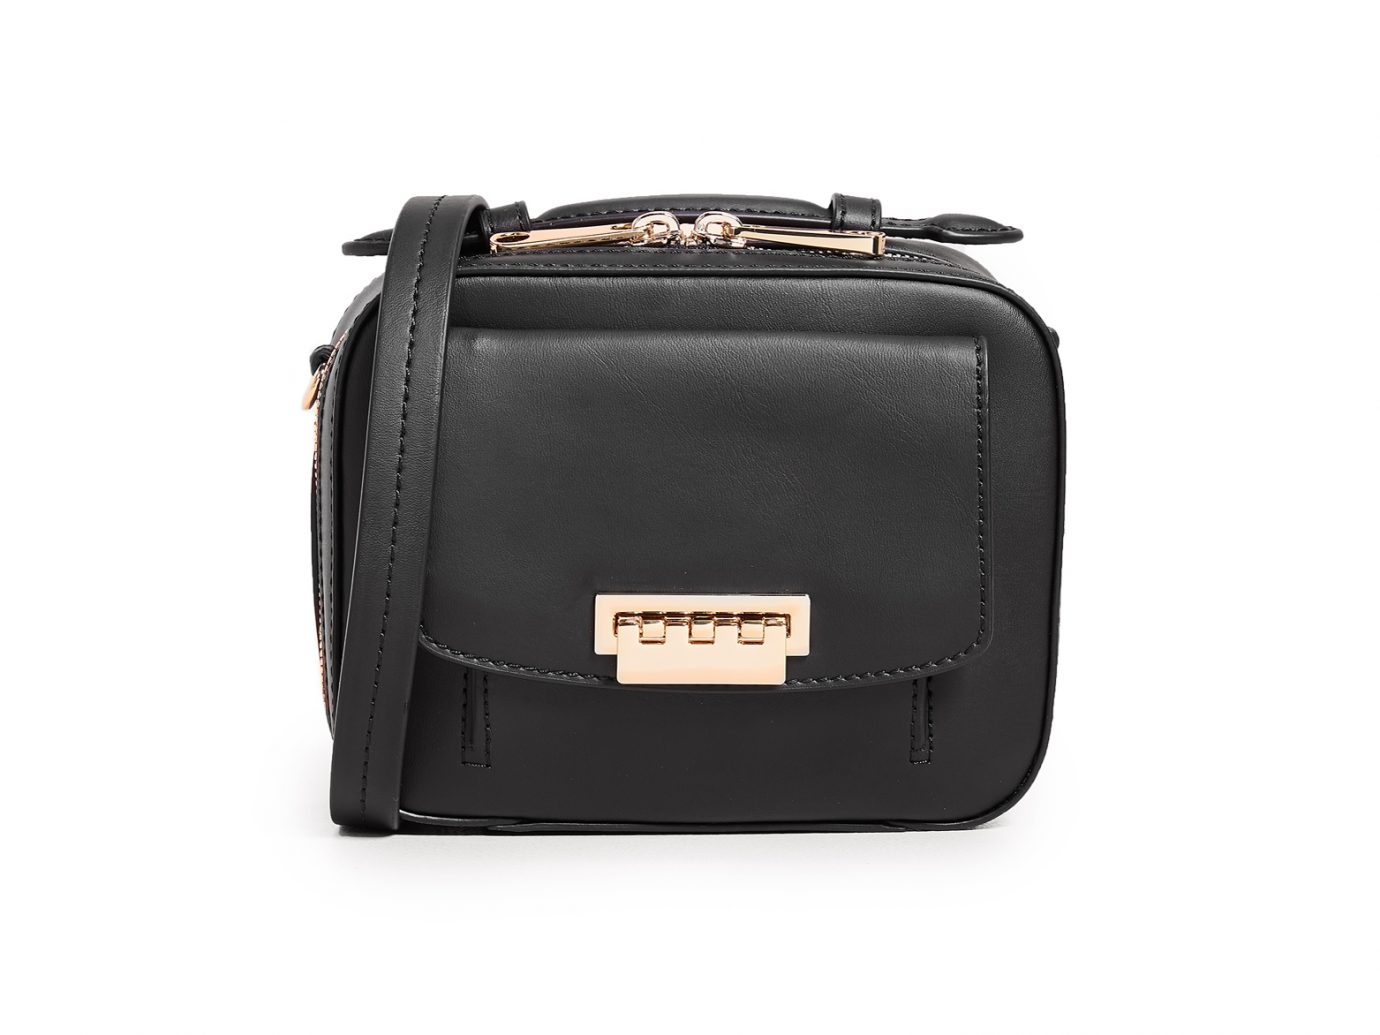 ZAC Zac Posen Earthette Smal Box Bag